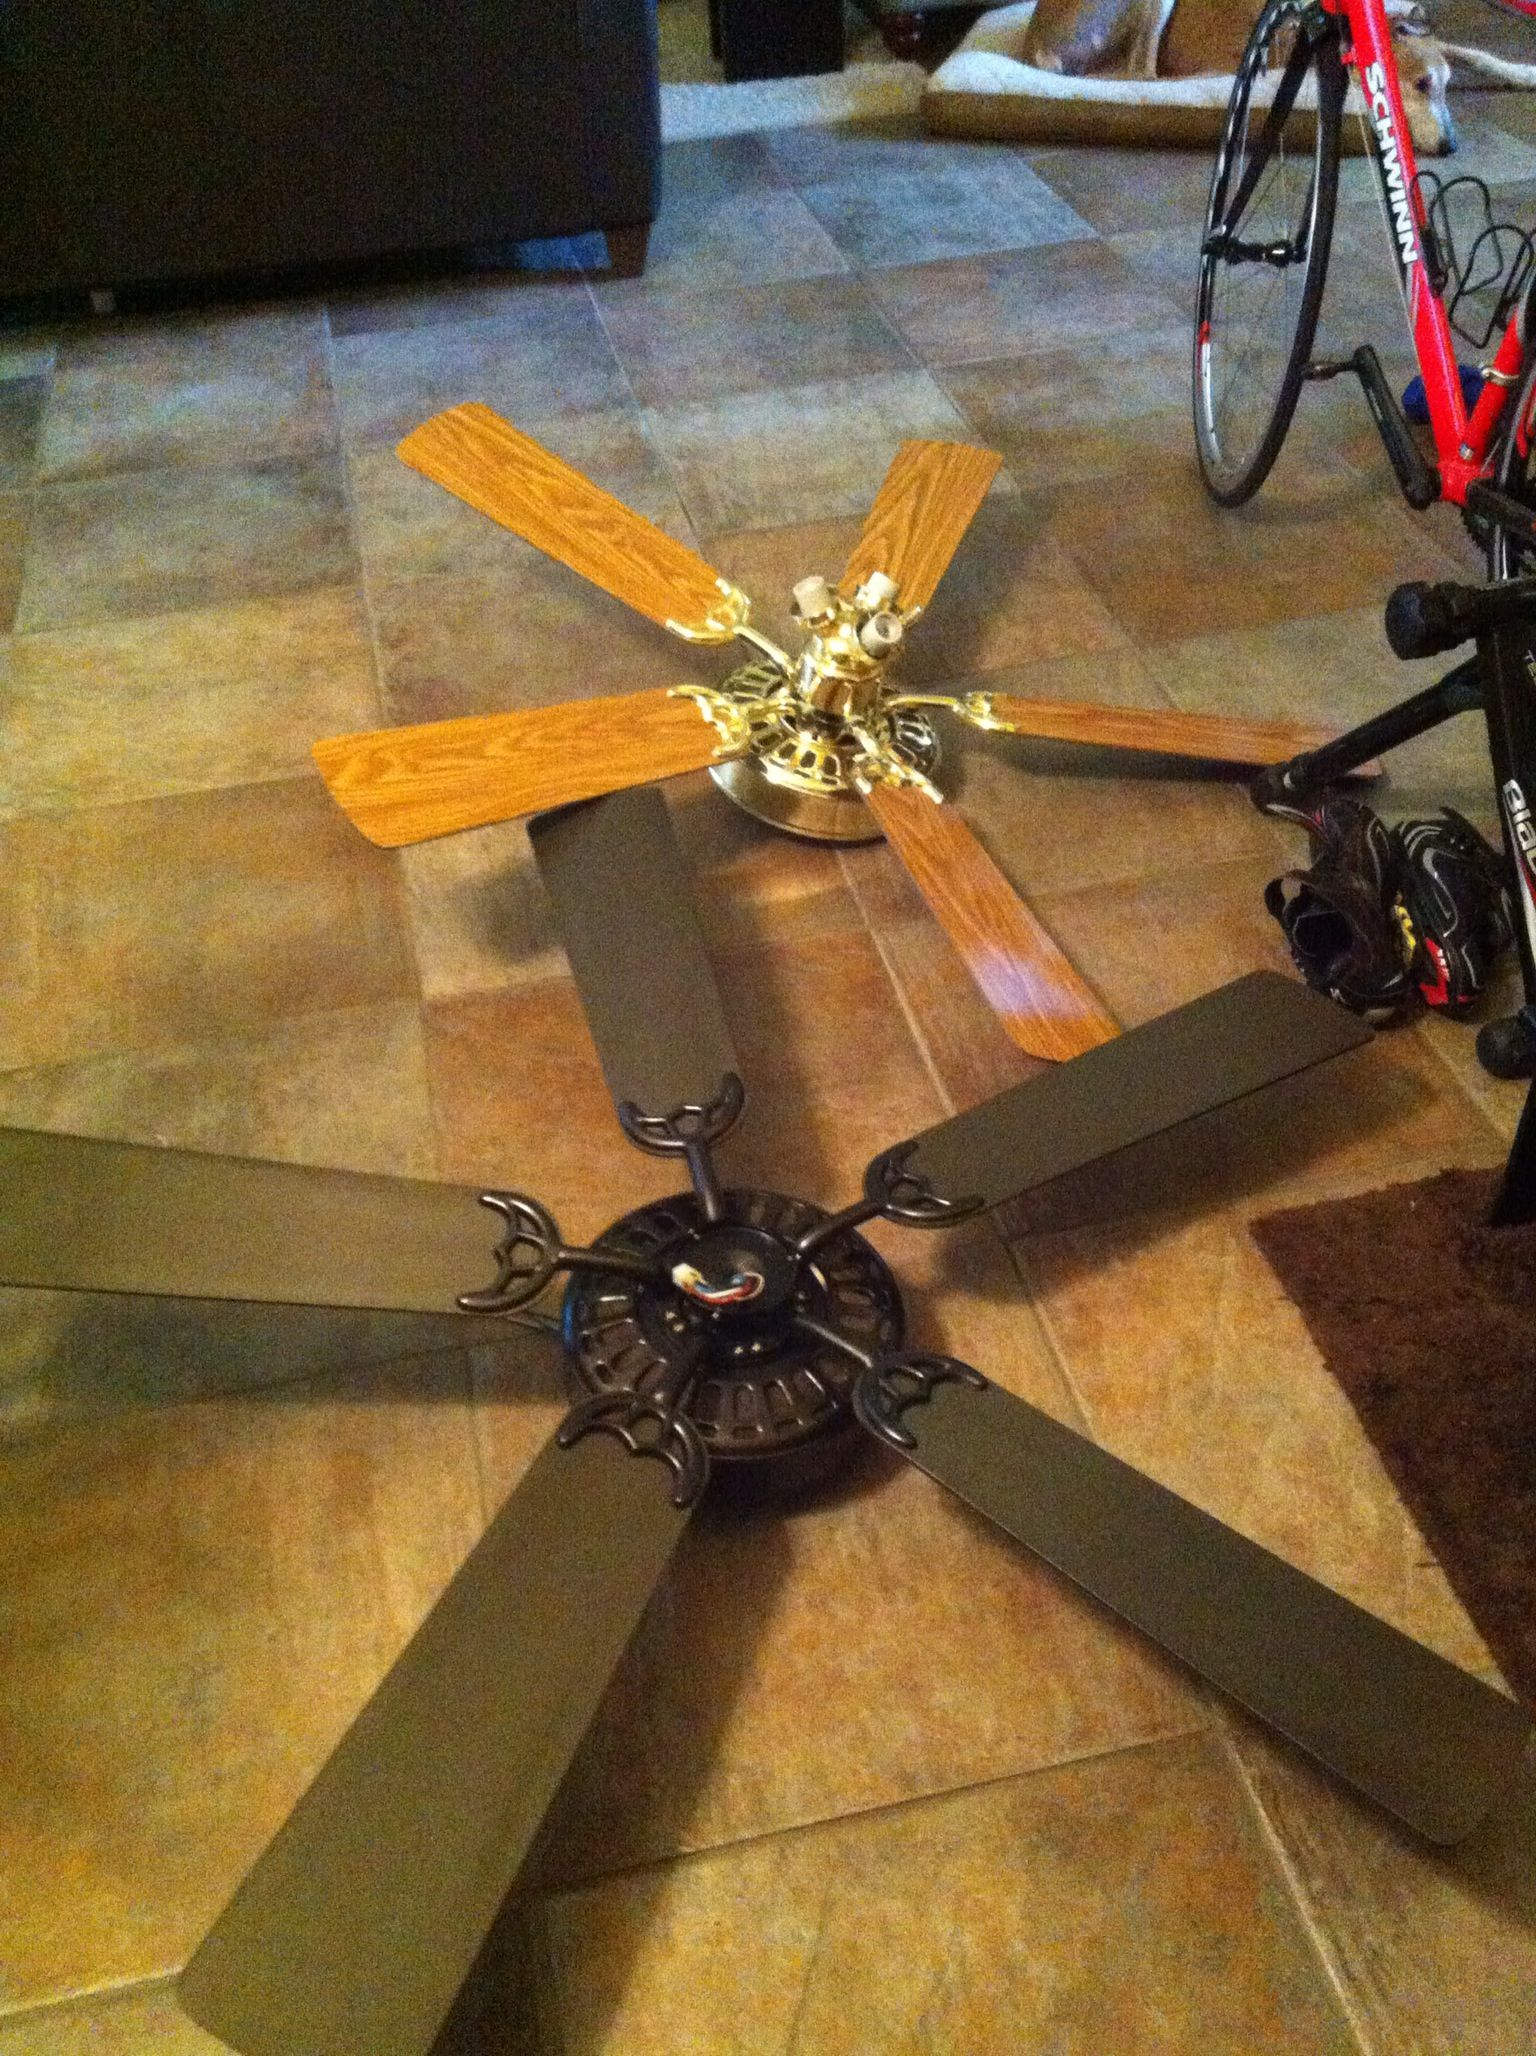 Painted Ceiling Fan For Guest Bedroom Painting Ceiling Fans Ceiling Fan Diy Home Decor